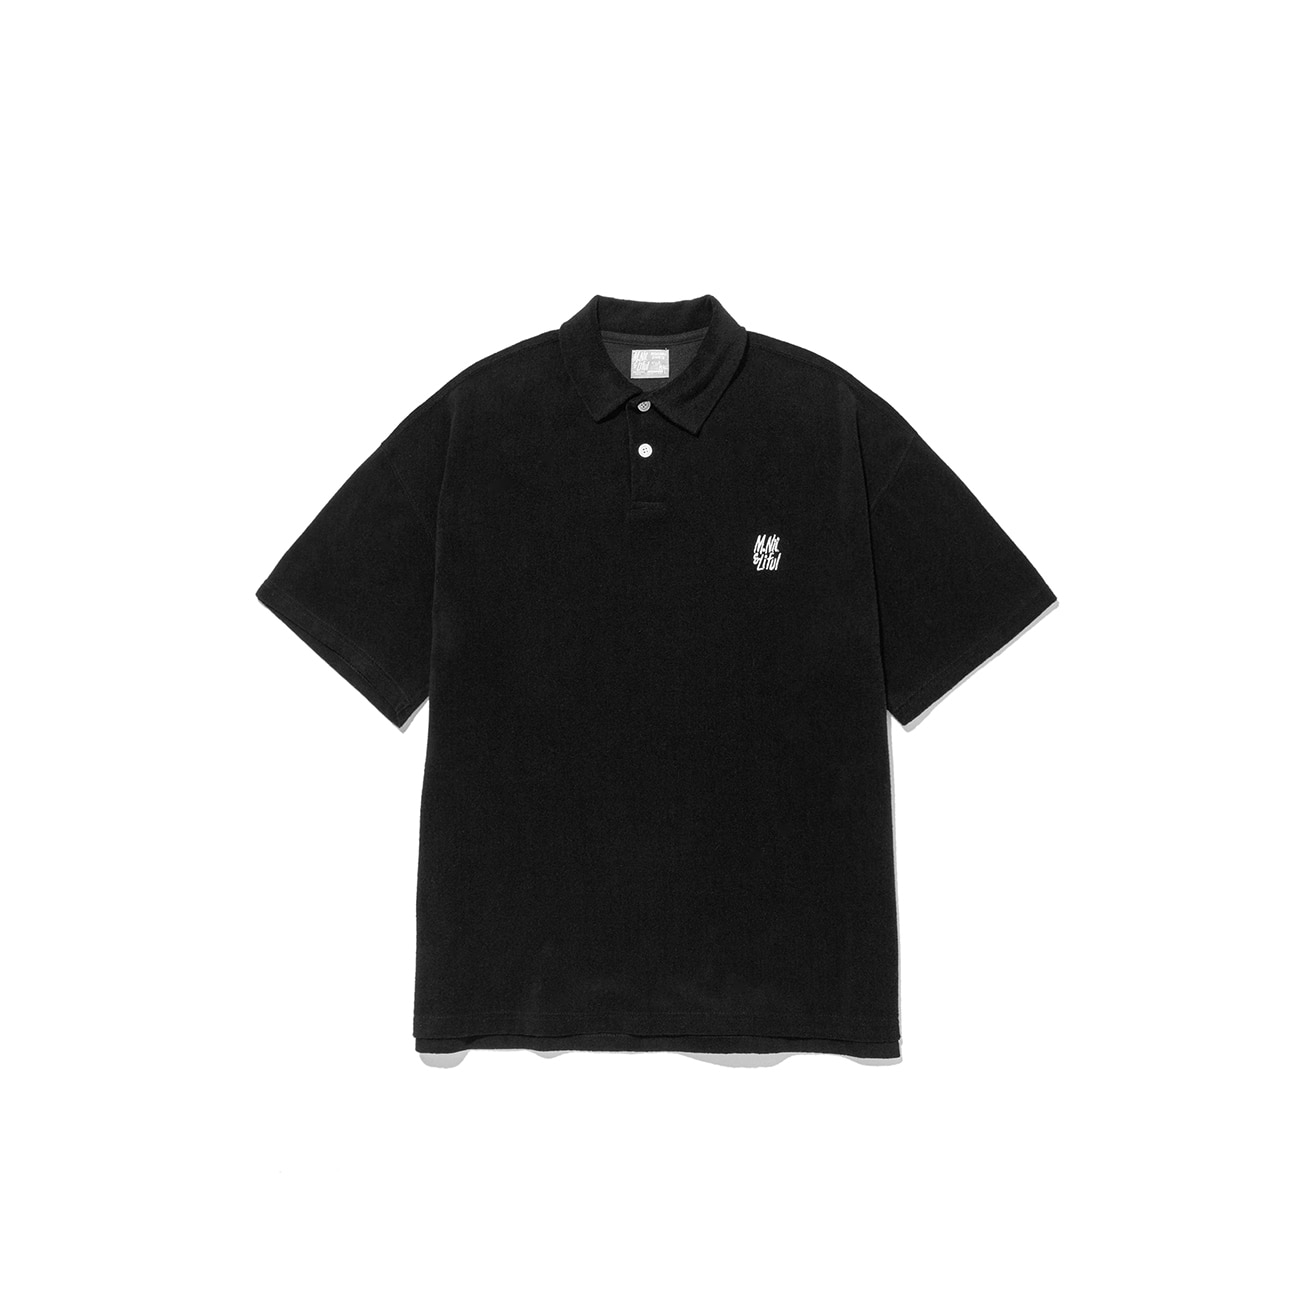 M.Nii x LIFUL Terry Polo Shirt